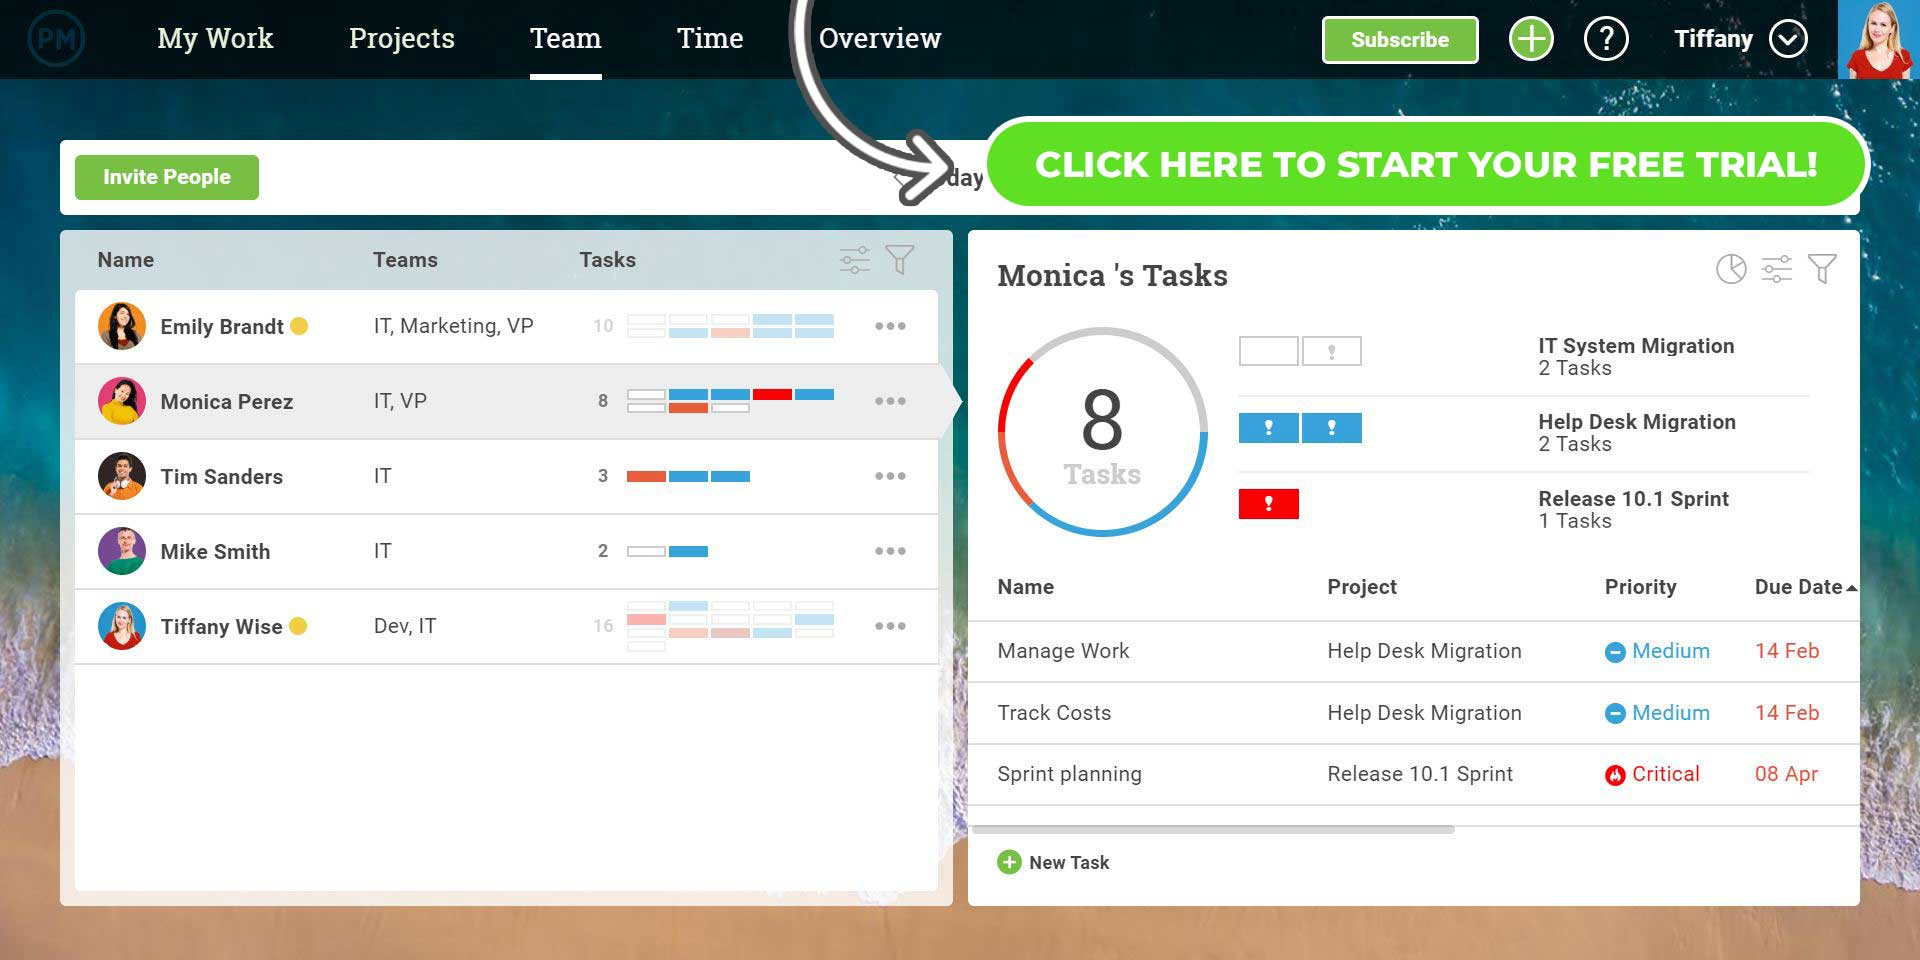 Team management page shows team members, their task and progress